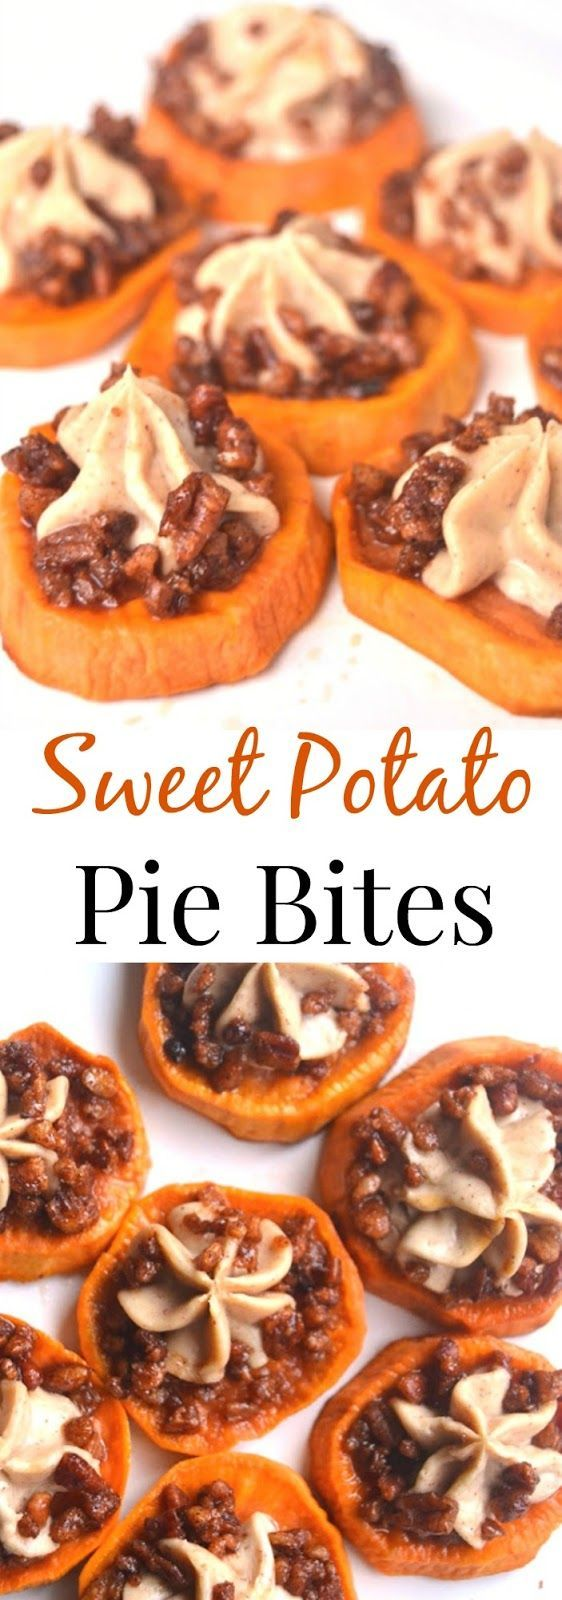 These Sweet Potato Pie Bites are perfect for dessert or part of a holiday meal. Roasted maple sweet potatoes with cinnamon cream cheese and maple pecans make this dish mouth-watering! www.nutritionistreviews.com